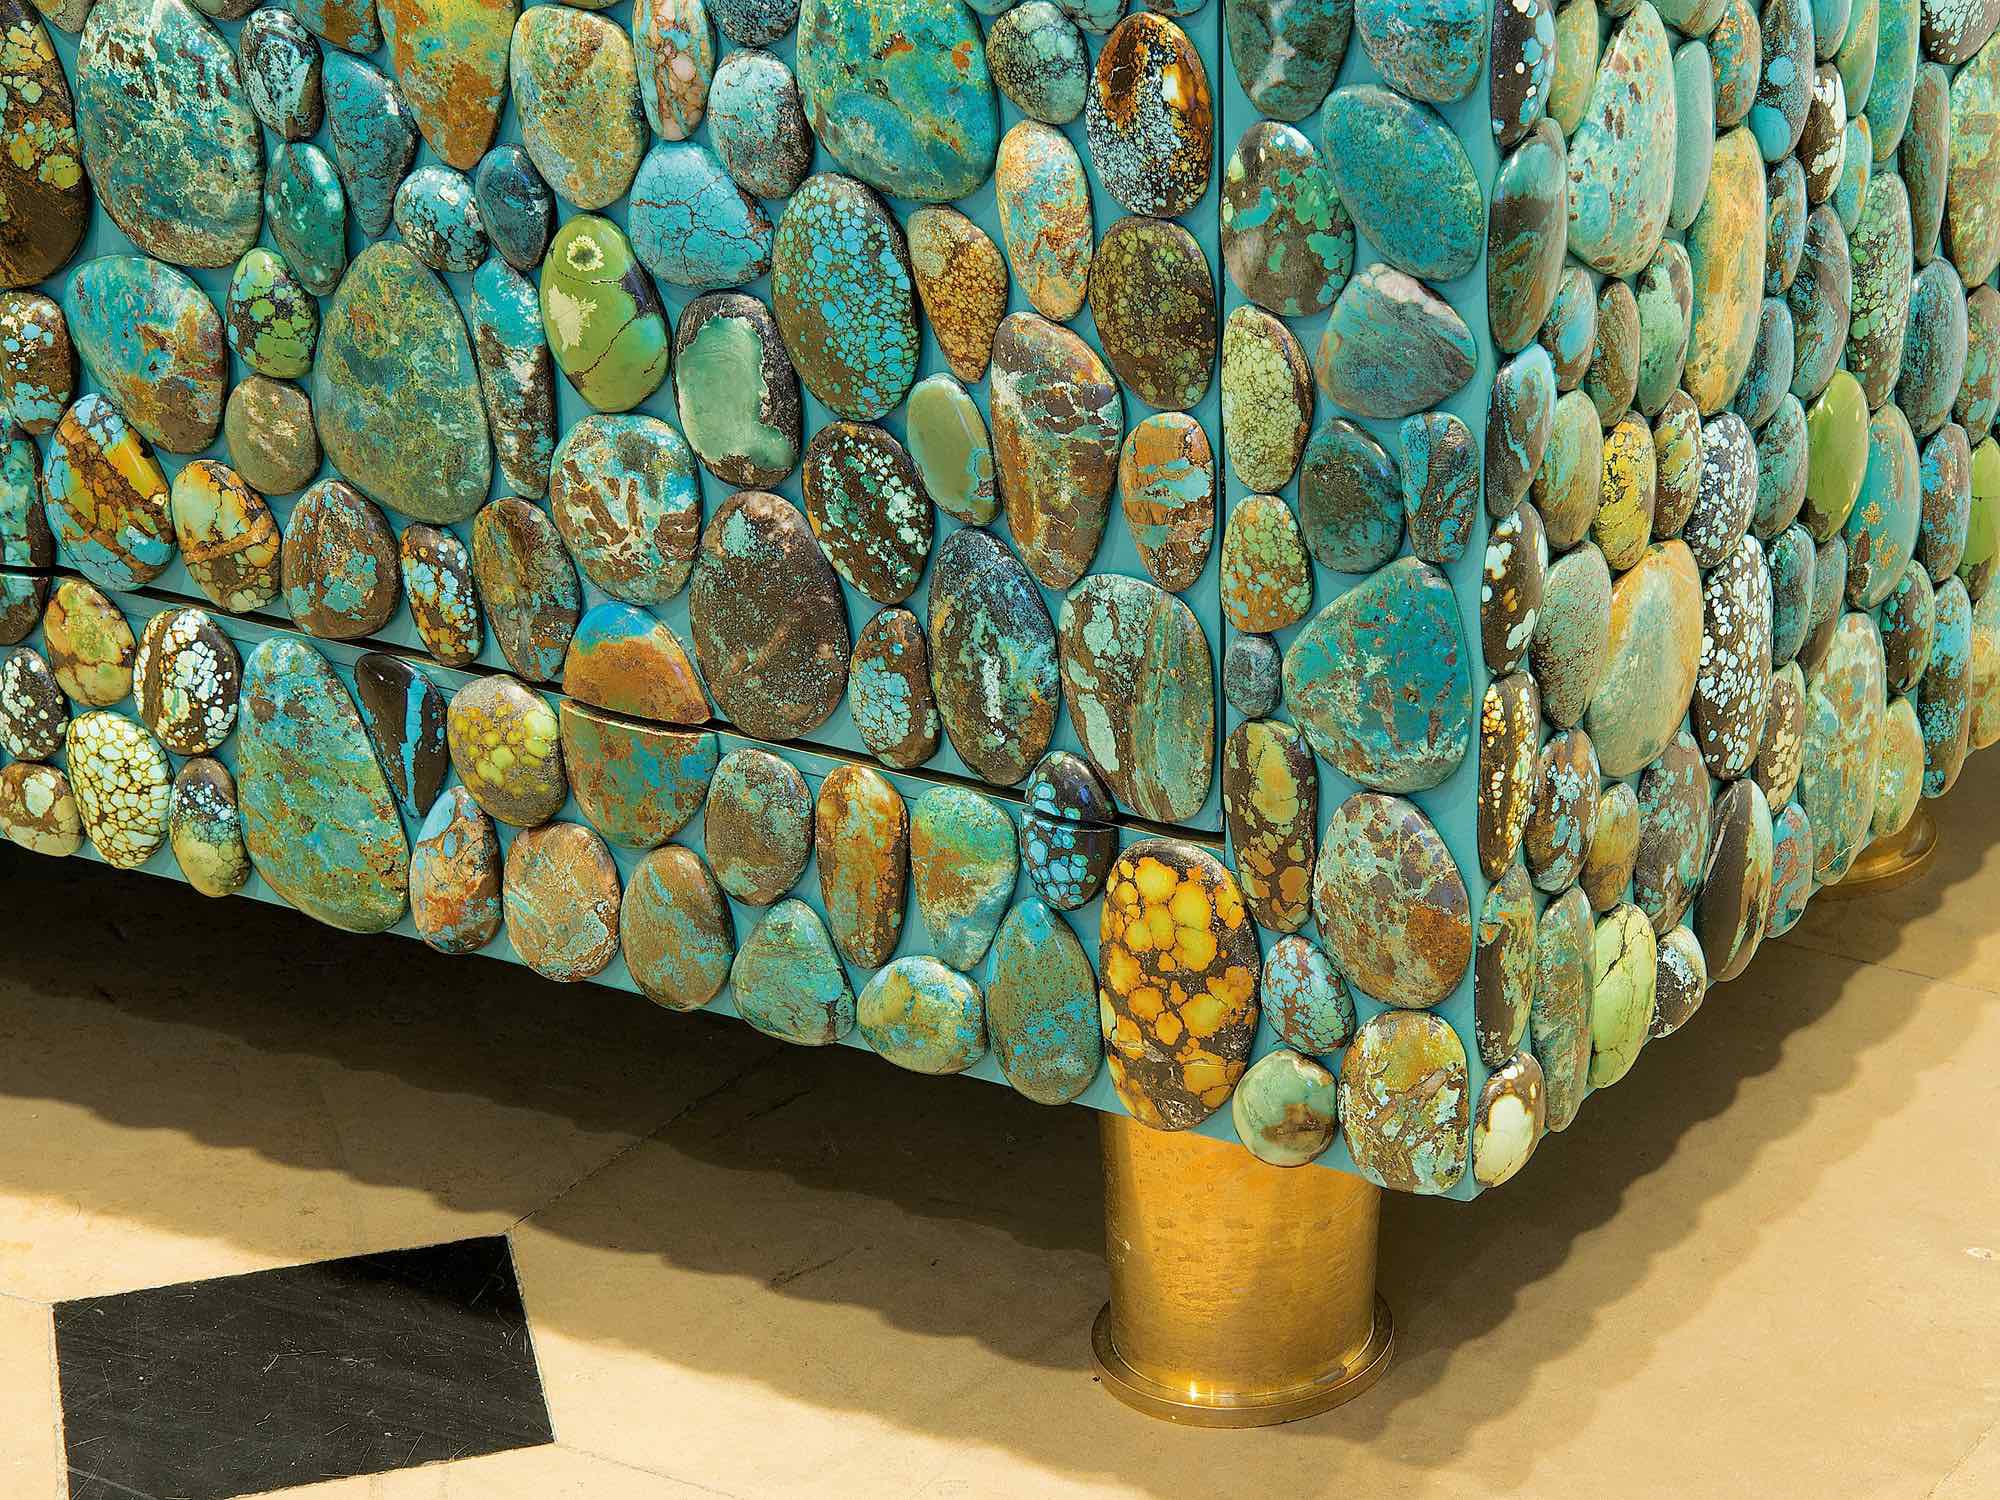 Kam Tin - Turquoise Cabinet With Four Opening Doors Made of Turquoise Cabochons - Image  sc 1 st  Decaso & Sophisticated Kam Tin - Turquoise Cabinet With Four Opening Doors ...